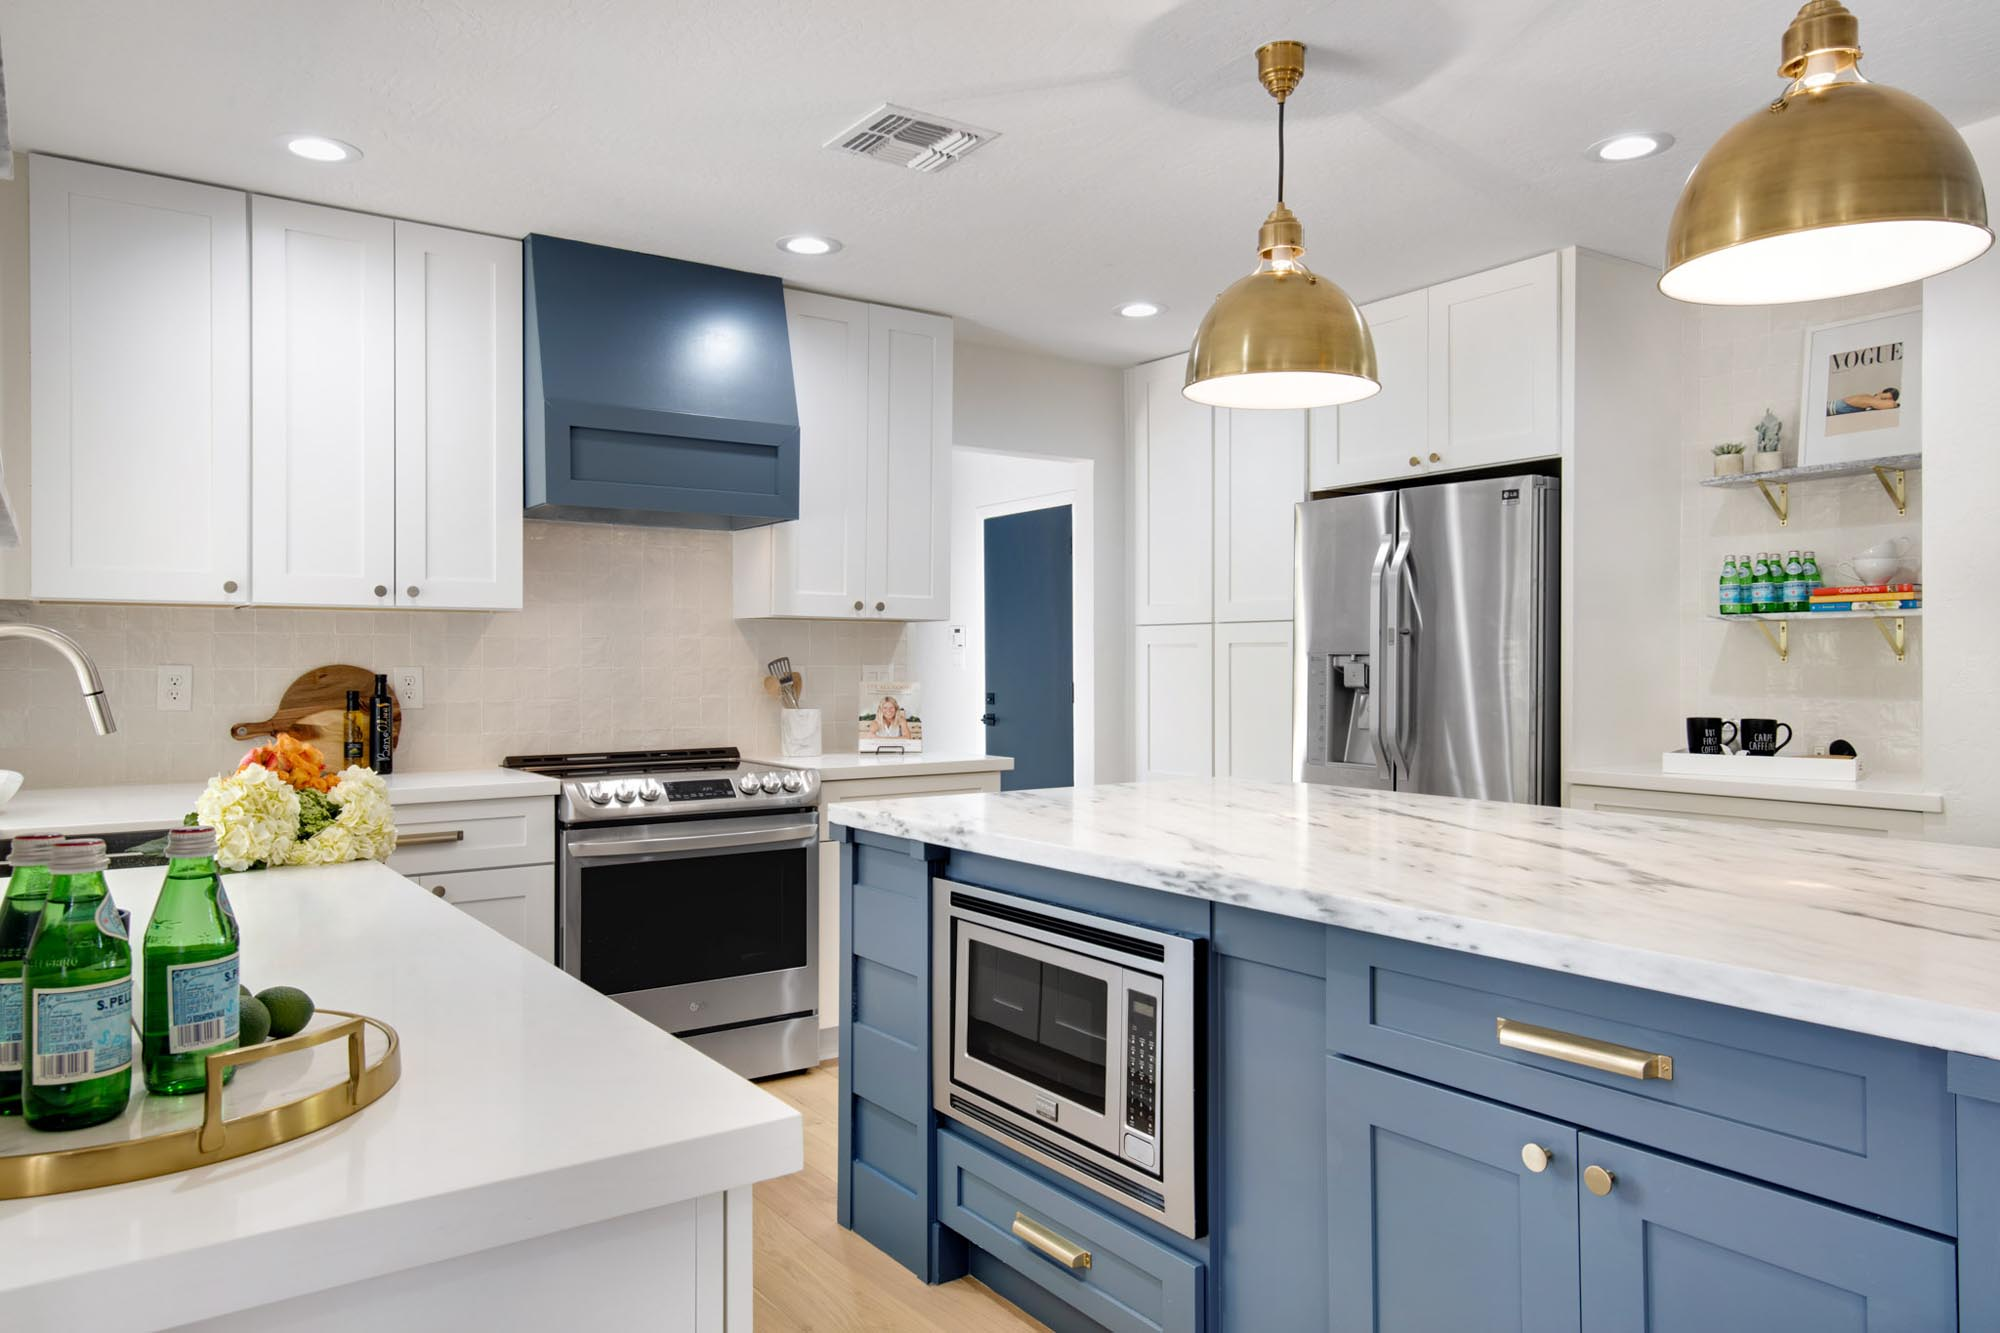 Modern kitchen with appliances and white countertops sink